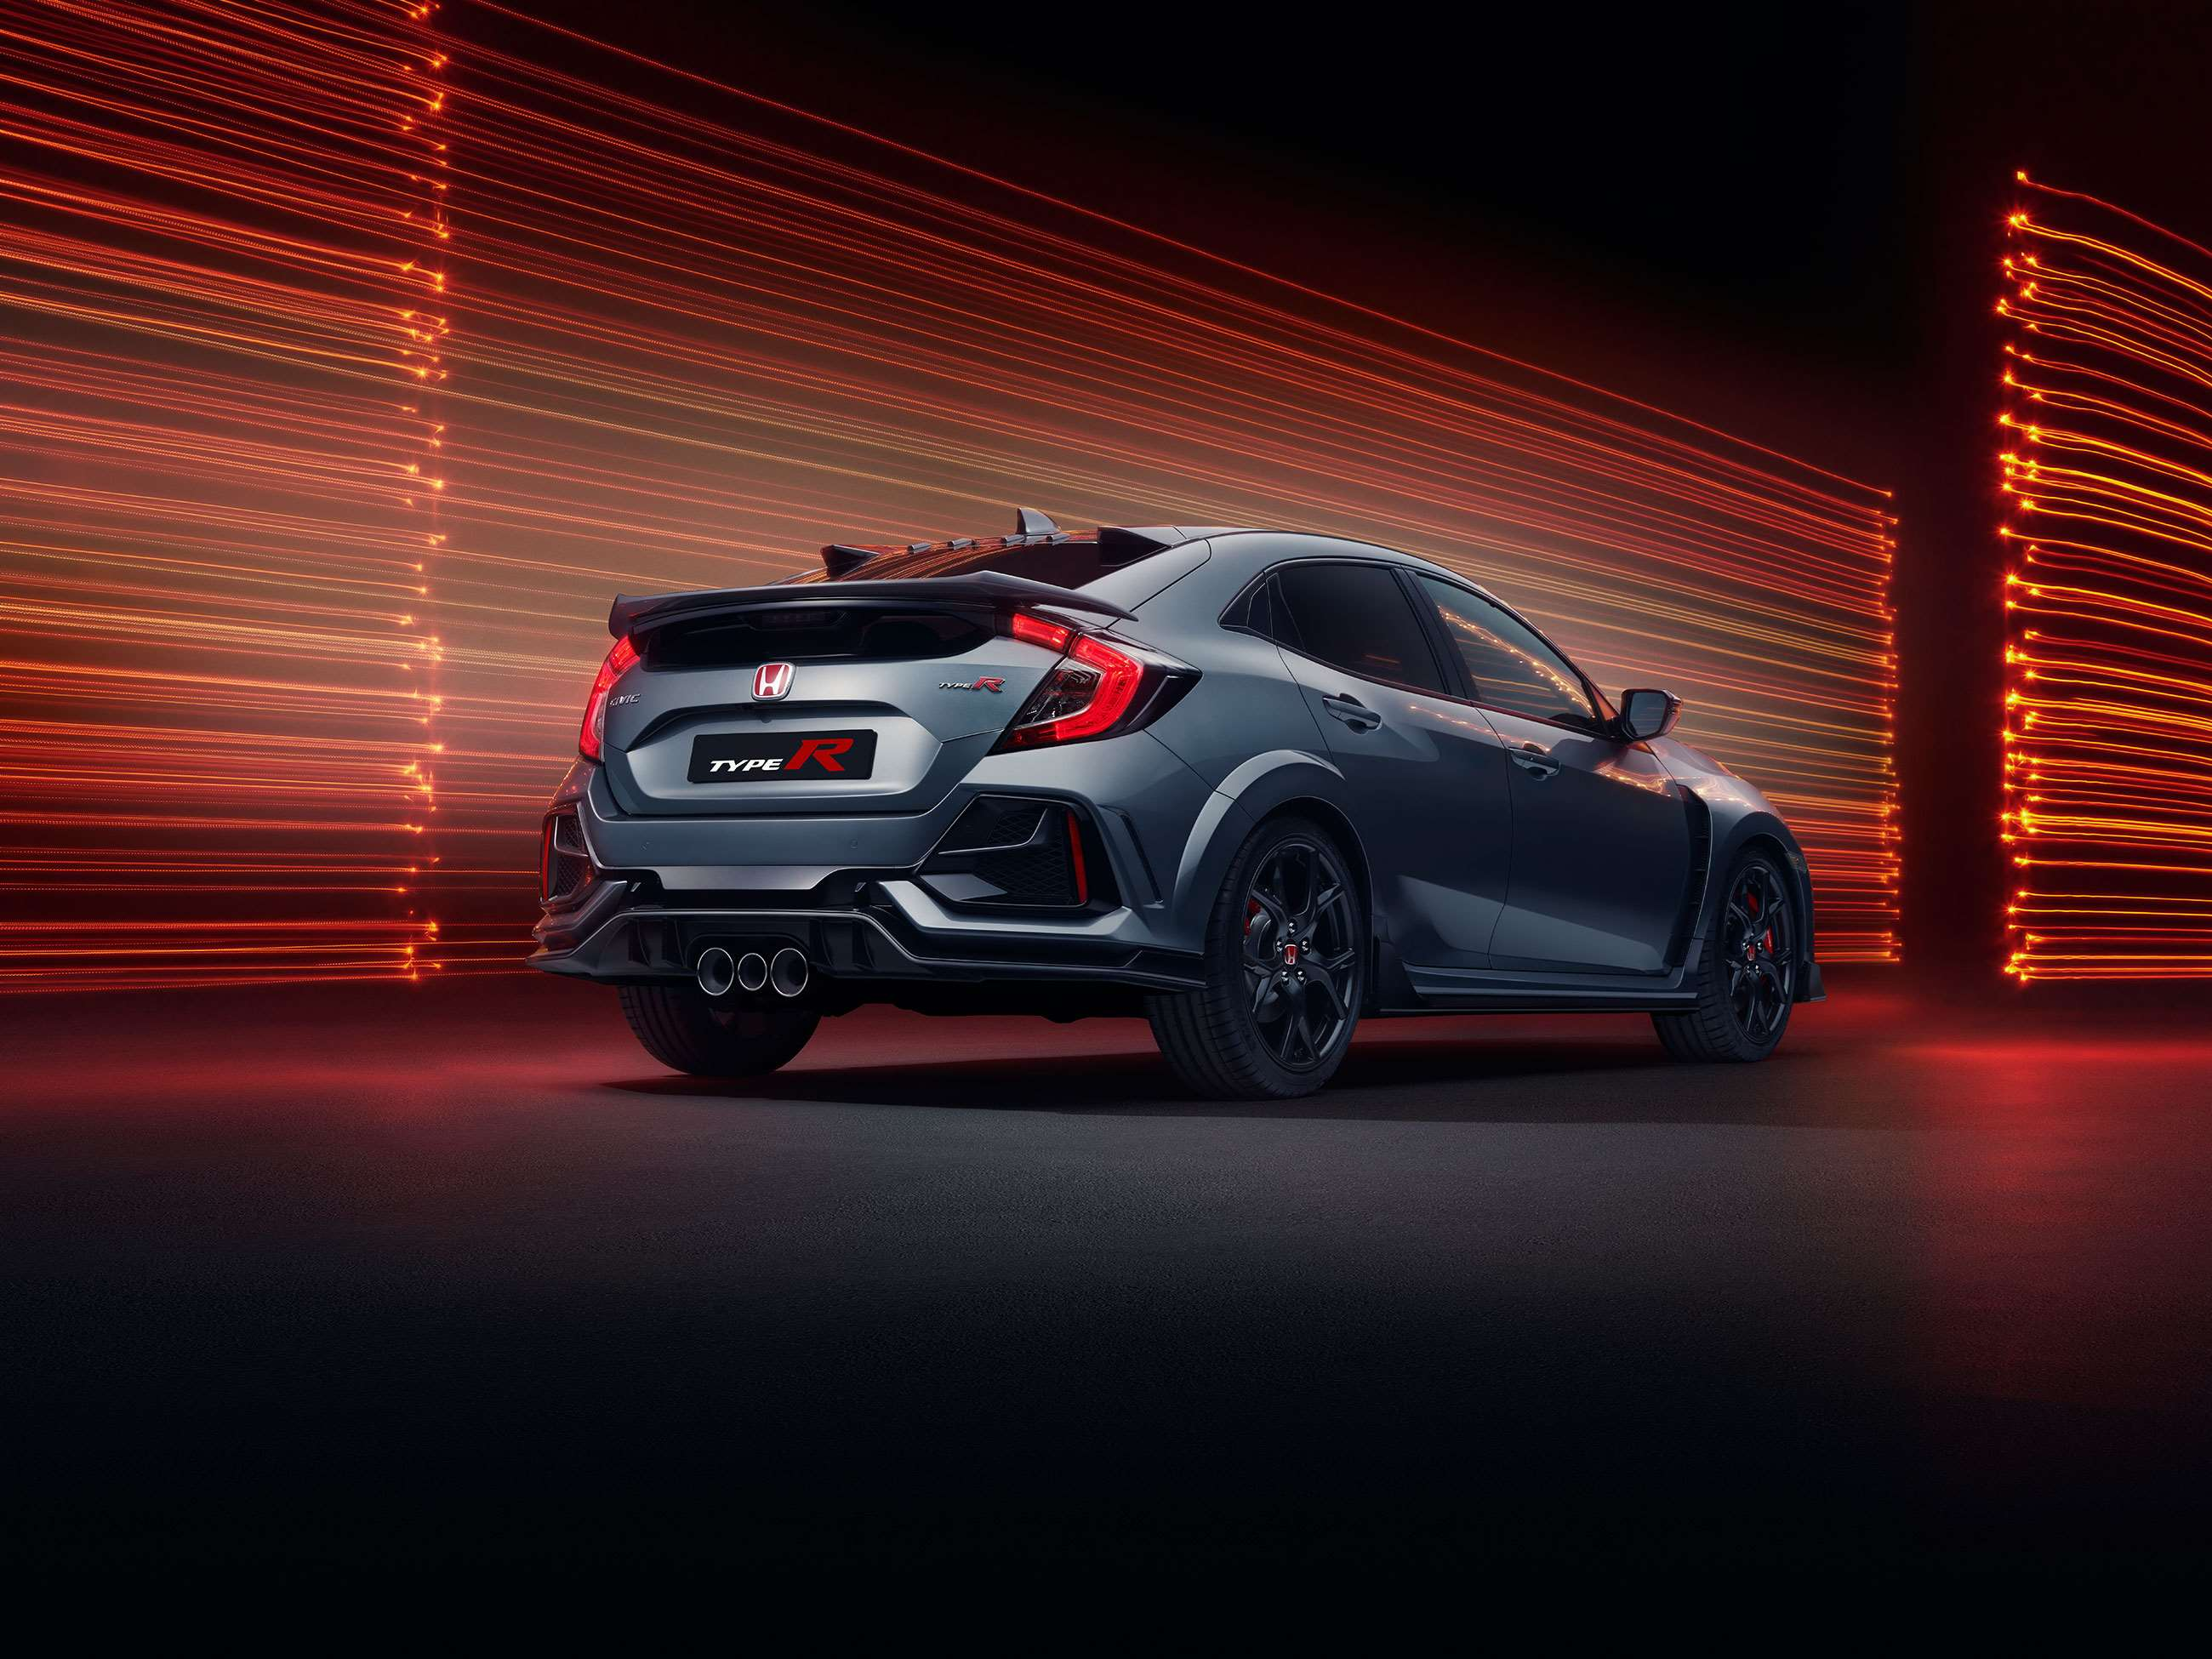 2020 Civic Type R Comes With Two Special Editions And No Wing